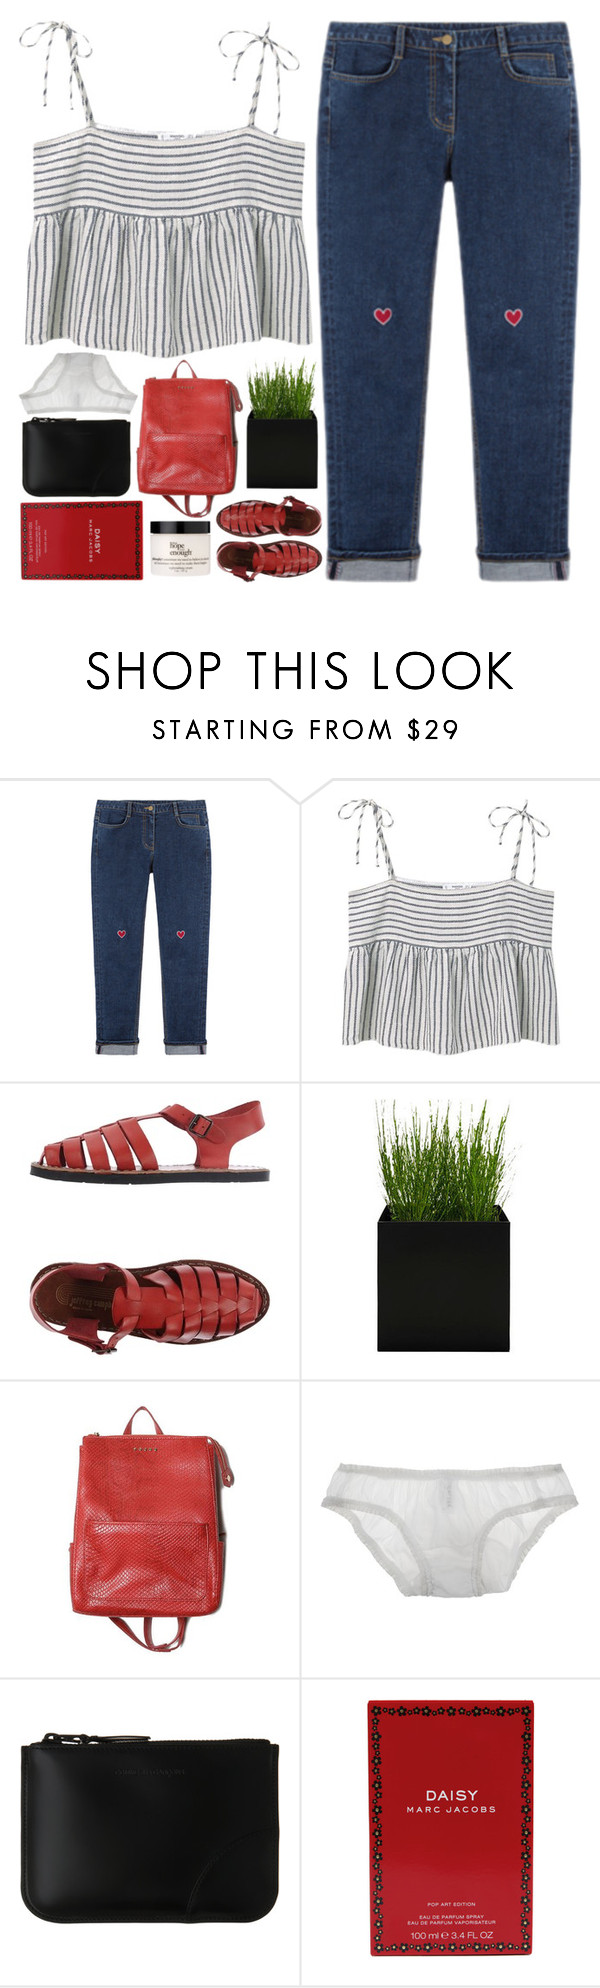 """""""☾ i can't stop the feeling // kams 50k set challenge day 5"""" by thundxrstorms ❤ liked on Polyvore featuring MANGO, Jeffrey Campbell, SALUA, Comme des Garçons, Marc Jacobs, philosophy, kams50ksetchallenge, MeenaGotTagged, gottatagrandomn3ss and DestinyHasBeenSummoned"""